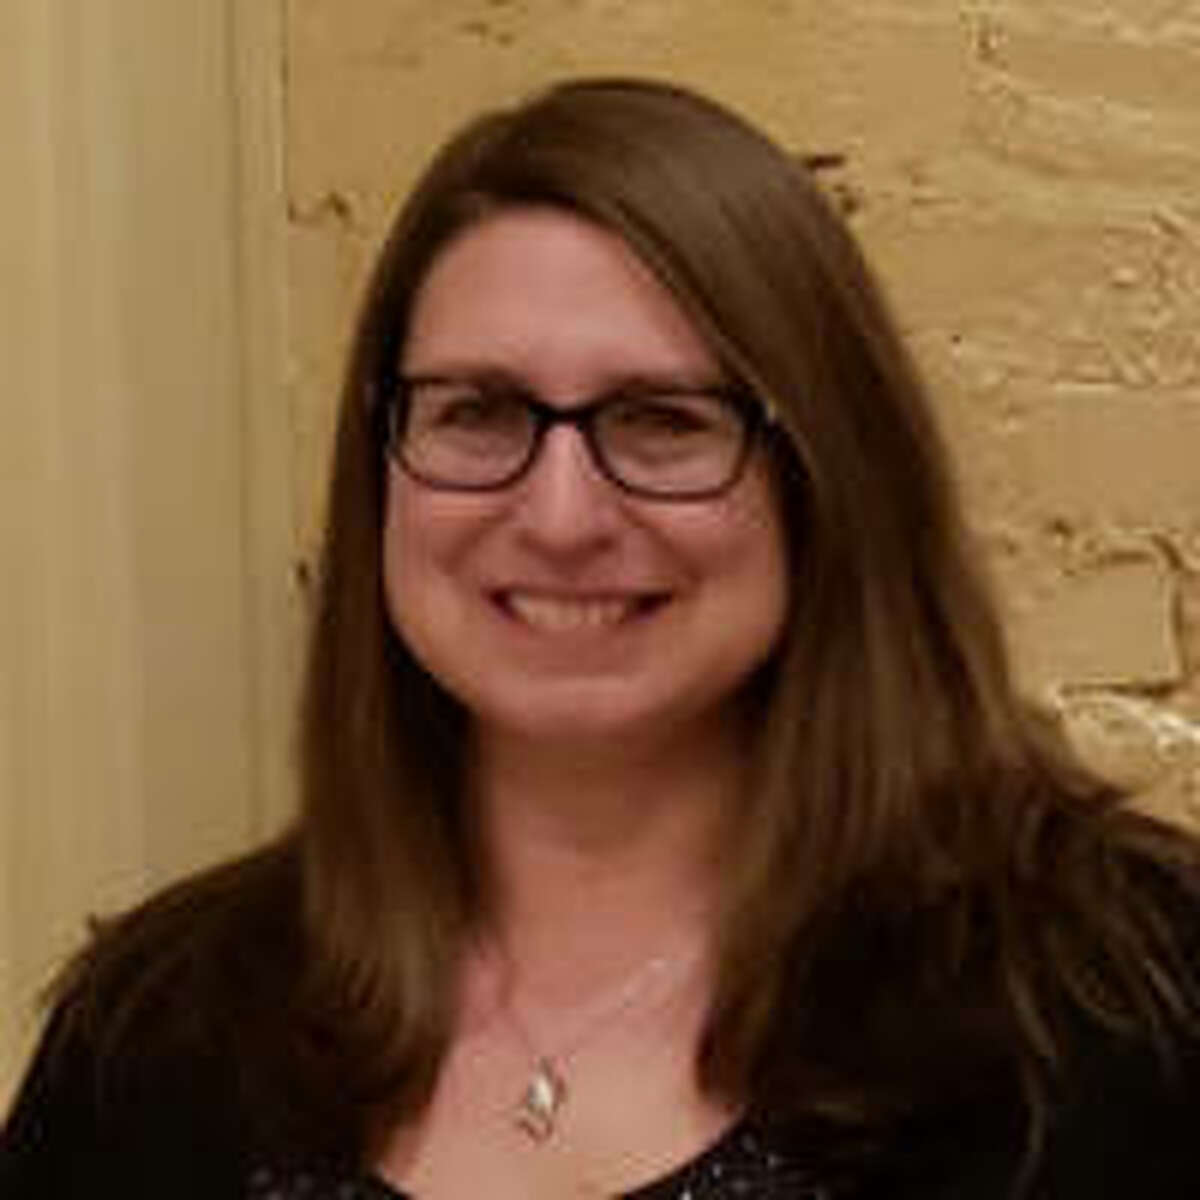 Because of the amount of data - and the increased workload from higher testing numbers - Amy Yeager, Madison County Health Department health promotion manager, said coronavirus data posting is occurring later in the day.